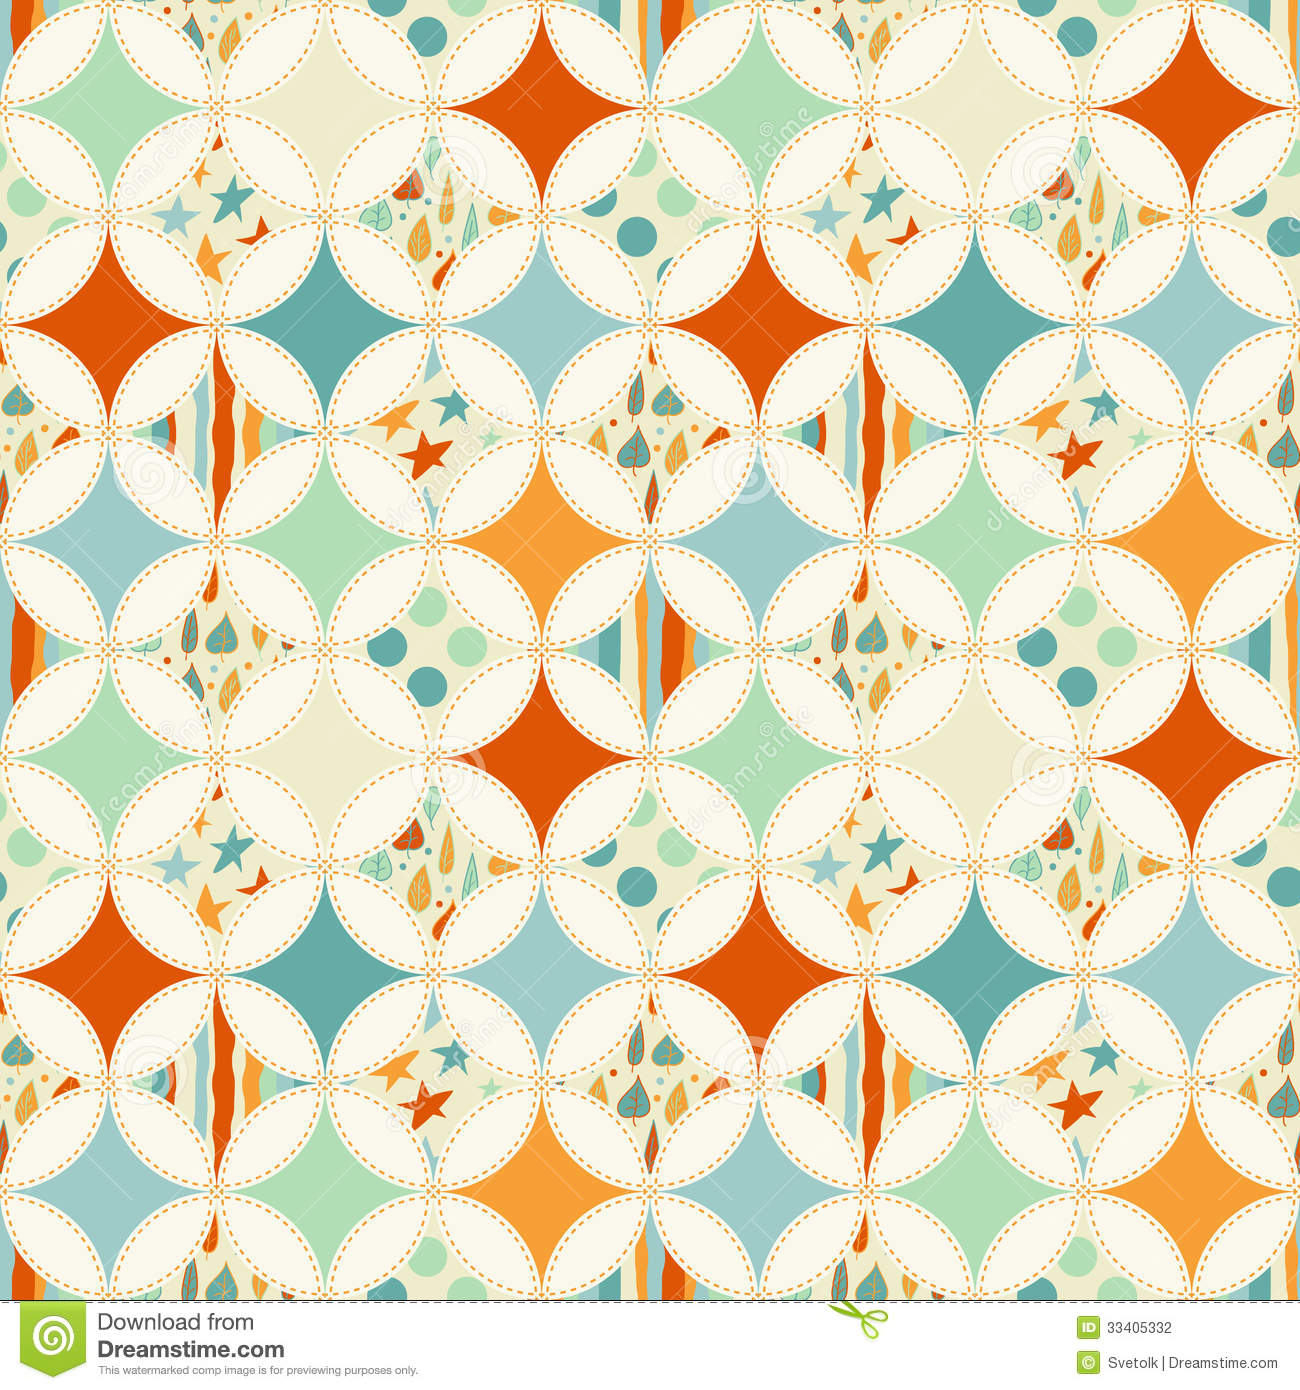 Overlapping Circles Seamless Pattern Stock Photography